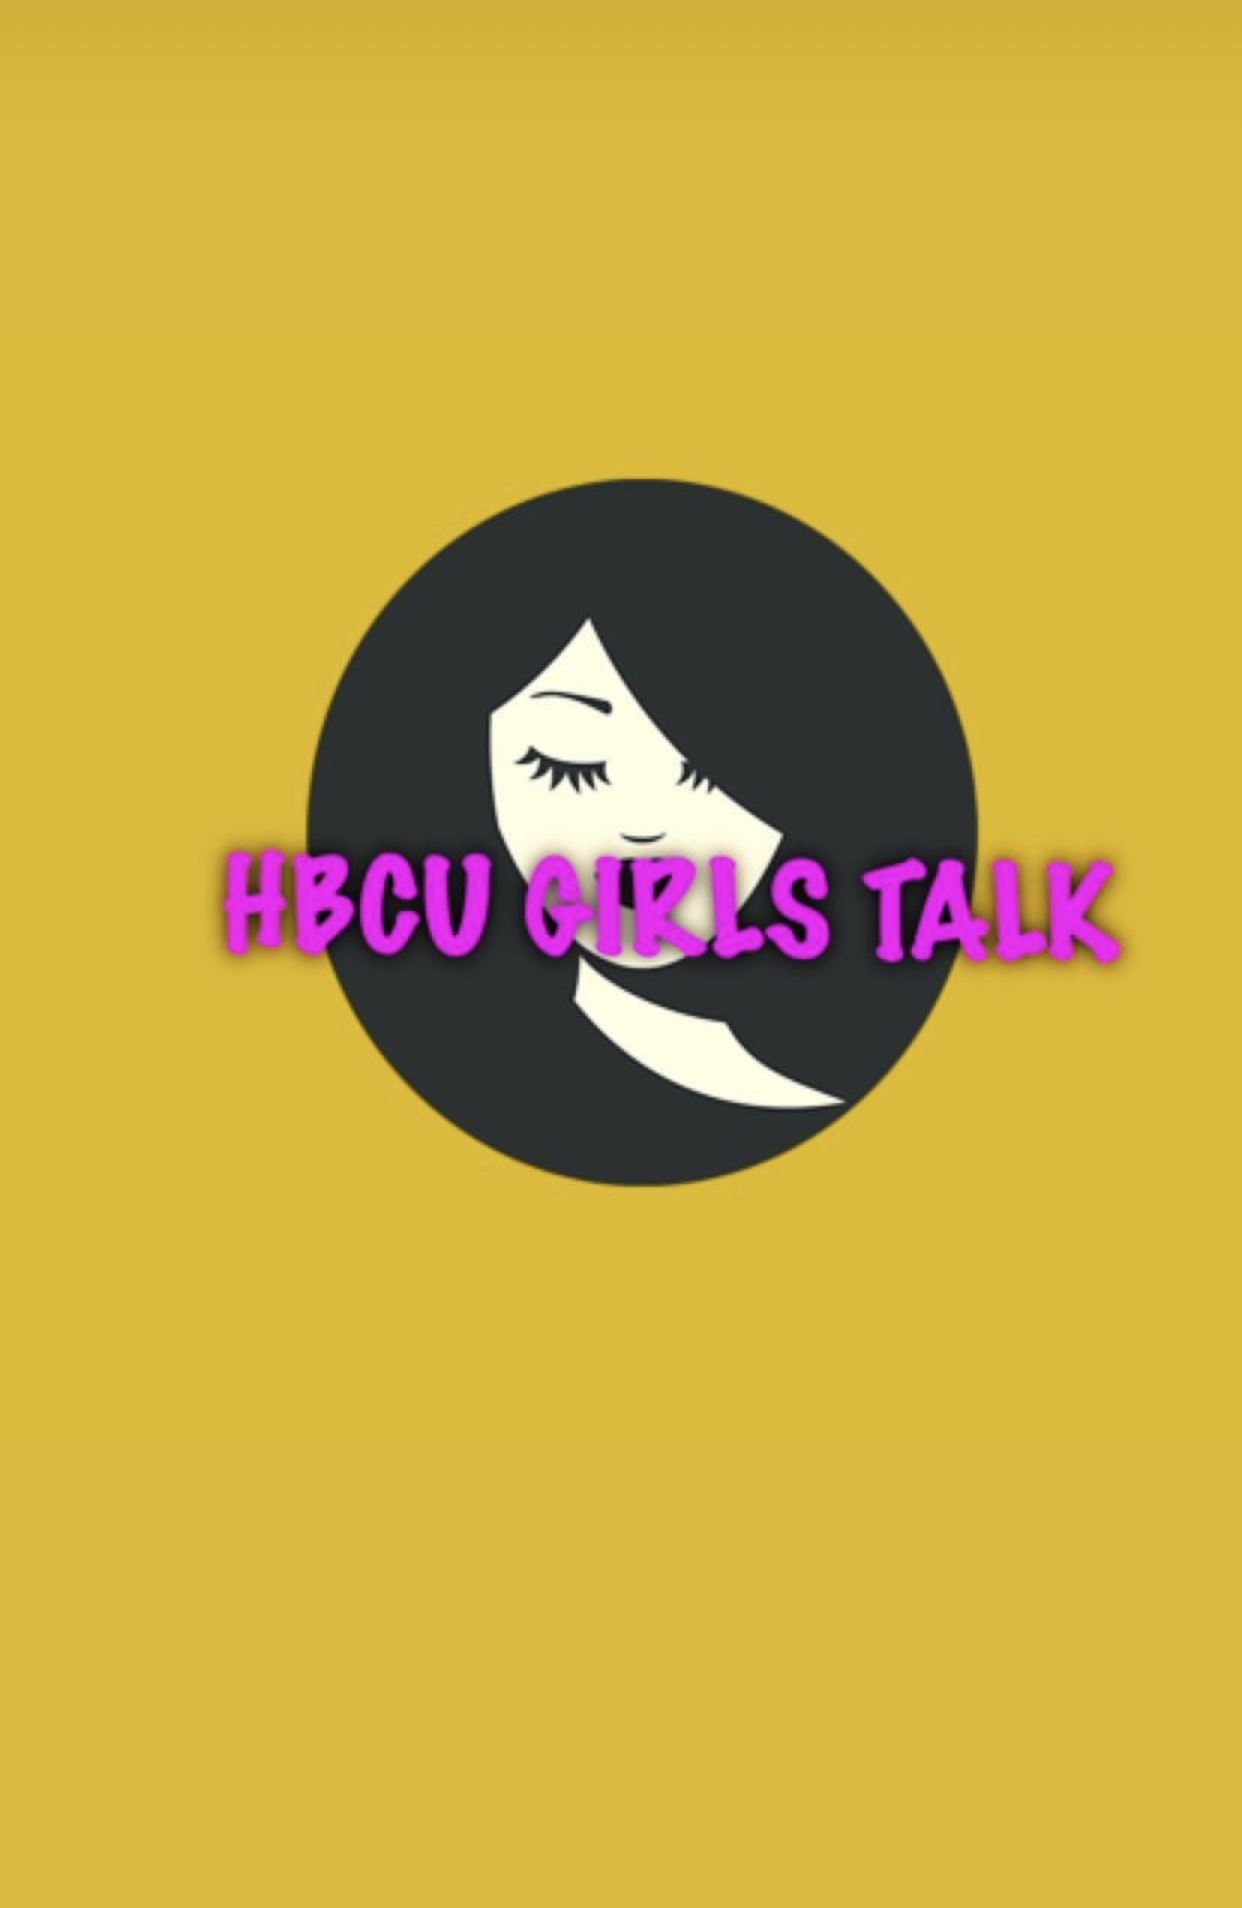 HBCU Girls Talk Logo June 21, 2020